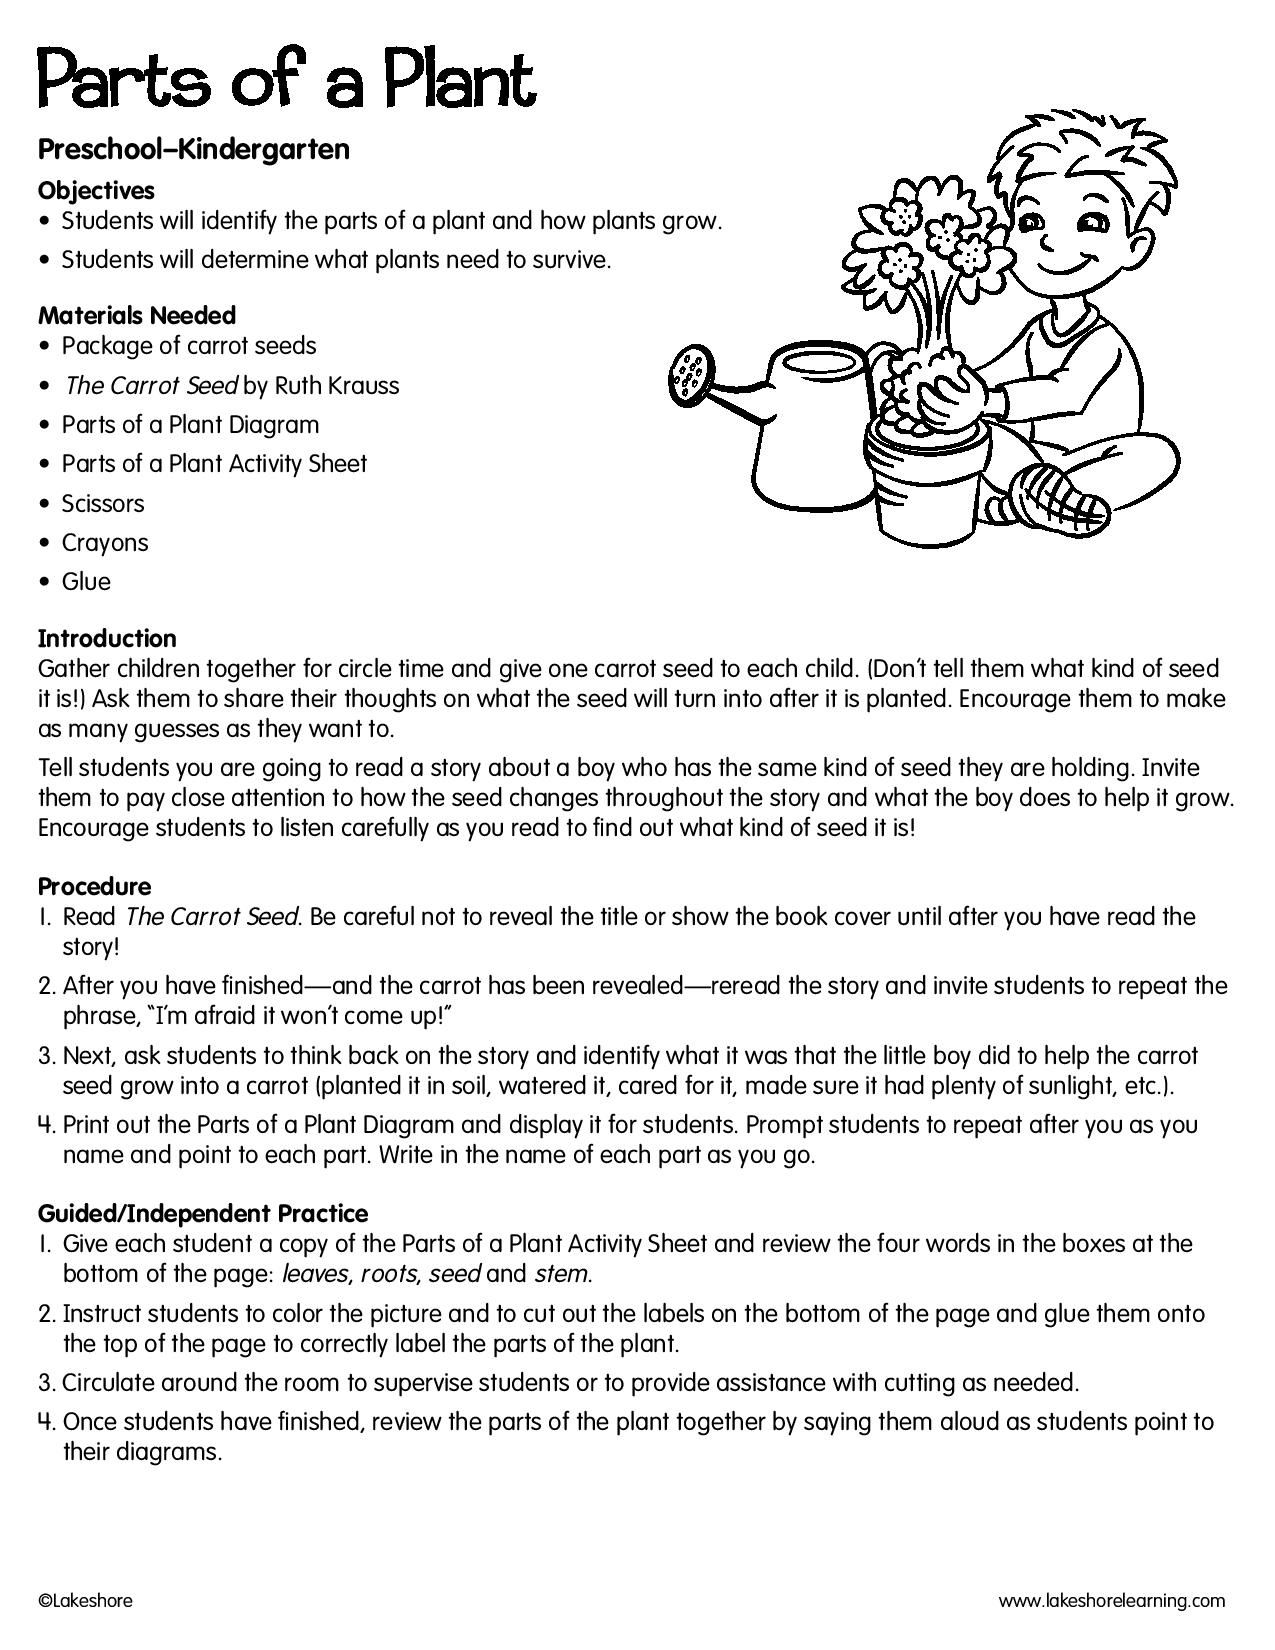 Parts Of A Plant Lessonplan Science Kindergarten Science Lesson Plans Kindergarten Science Lessons Kindergarten Lesson Plans Template [ 1650 x 1275 Pixel ]